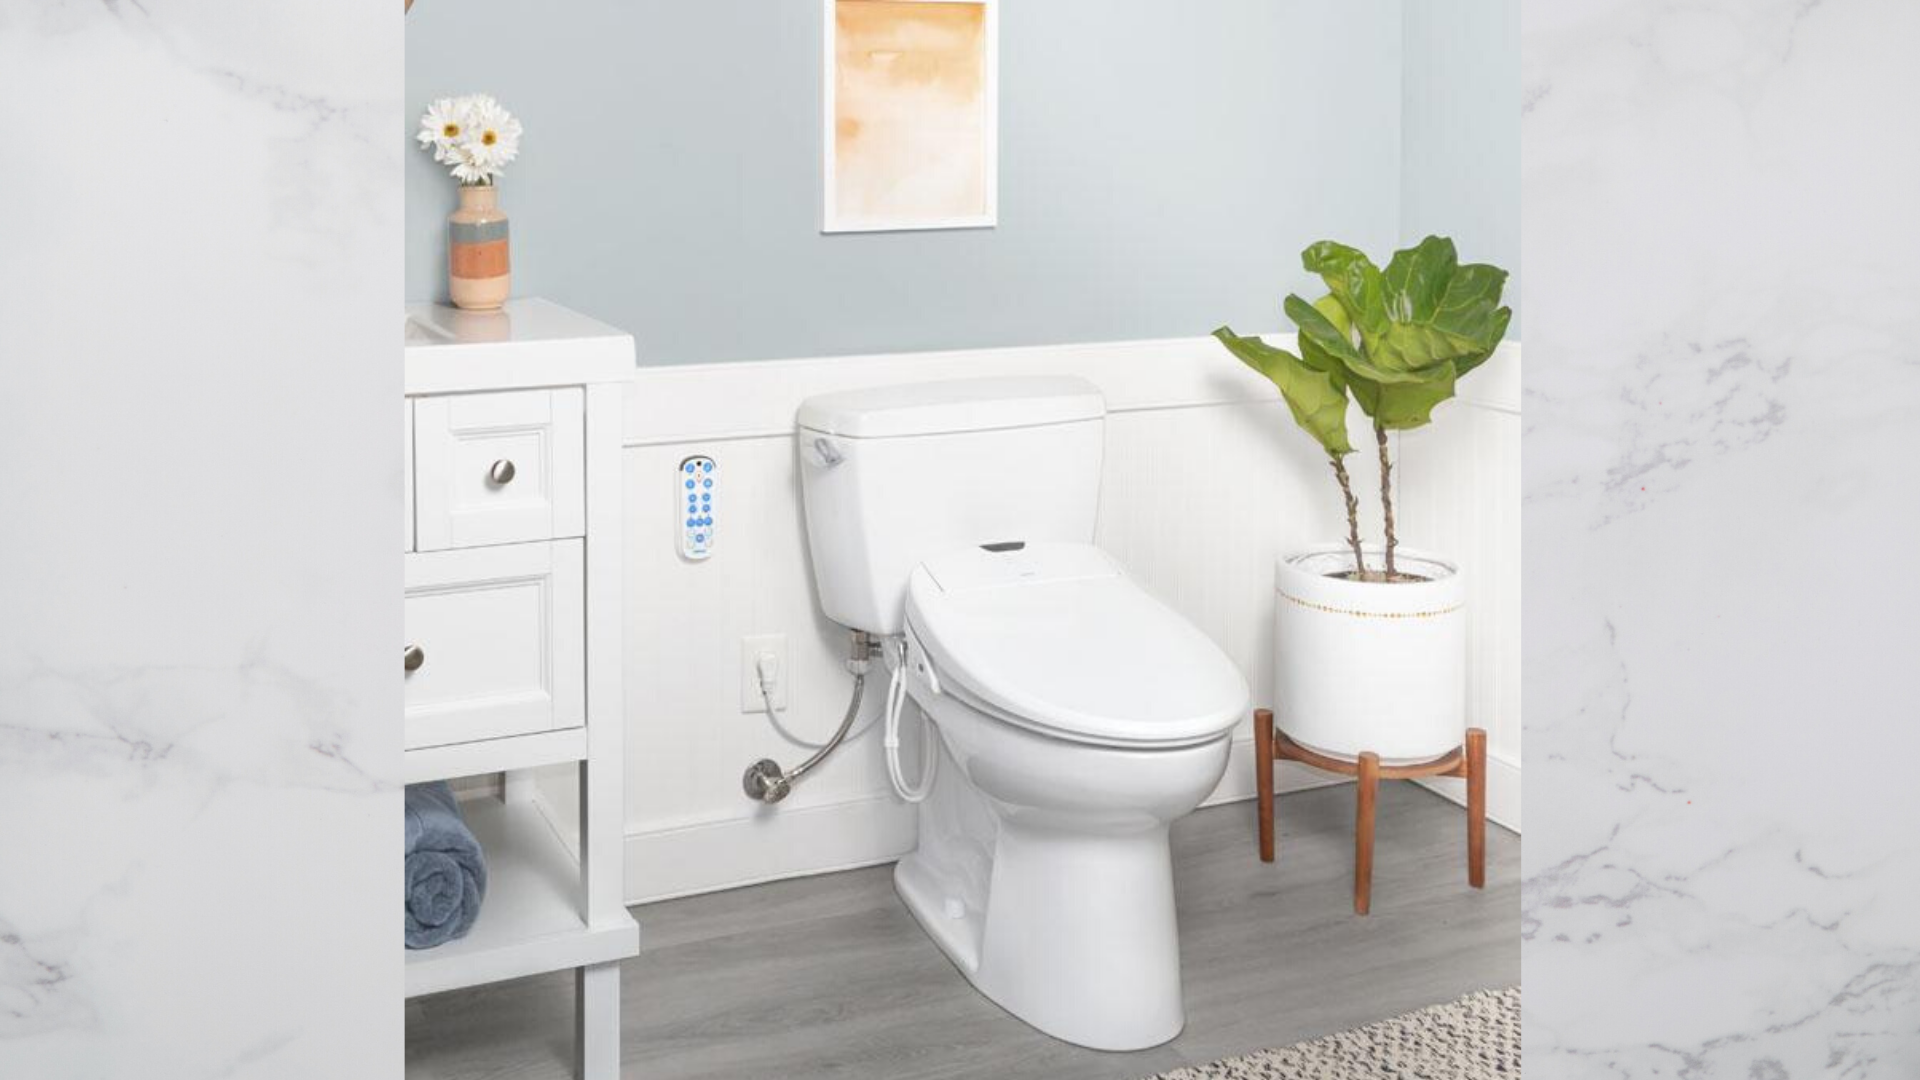 This Bidet Toilet Seat Will Change How You Use The Bathroom Forever